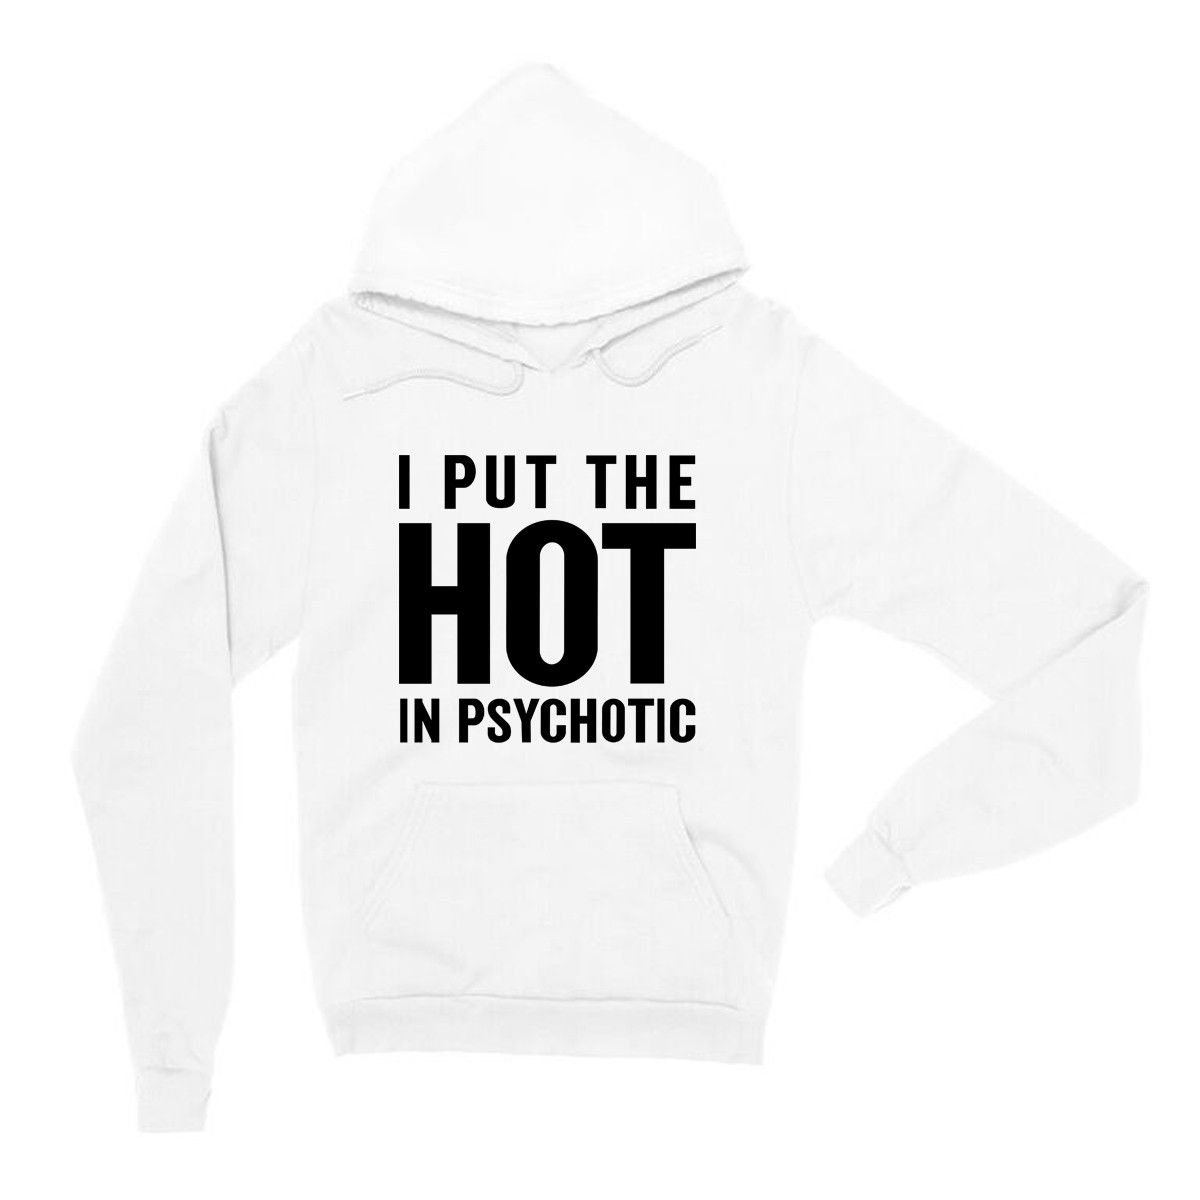 I Put The Hot In Psychotic Hoodie Sarcastic Clothing Hoodies Funny Hoodies